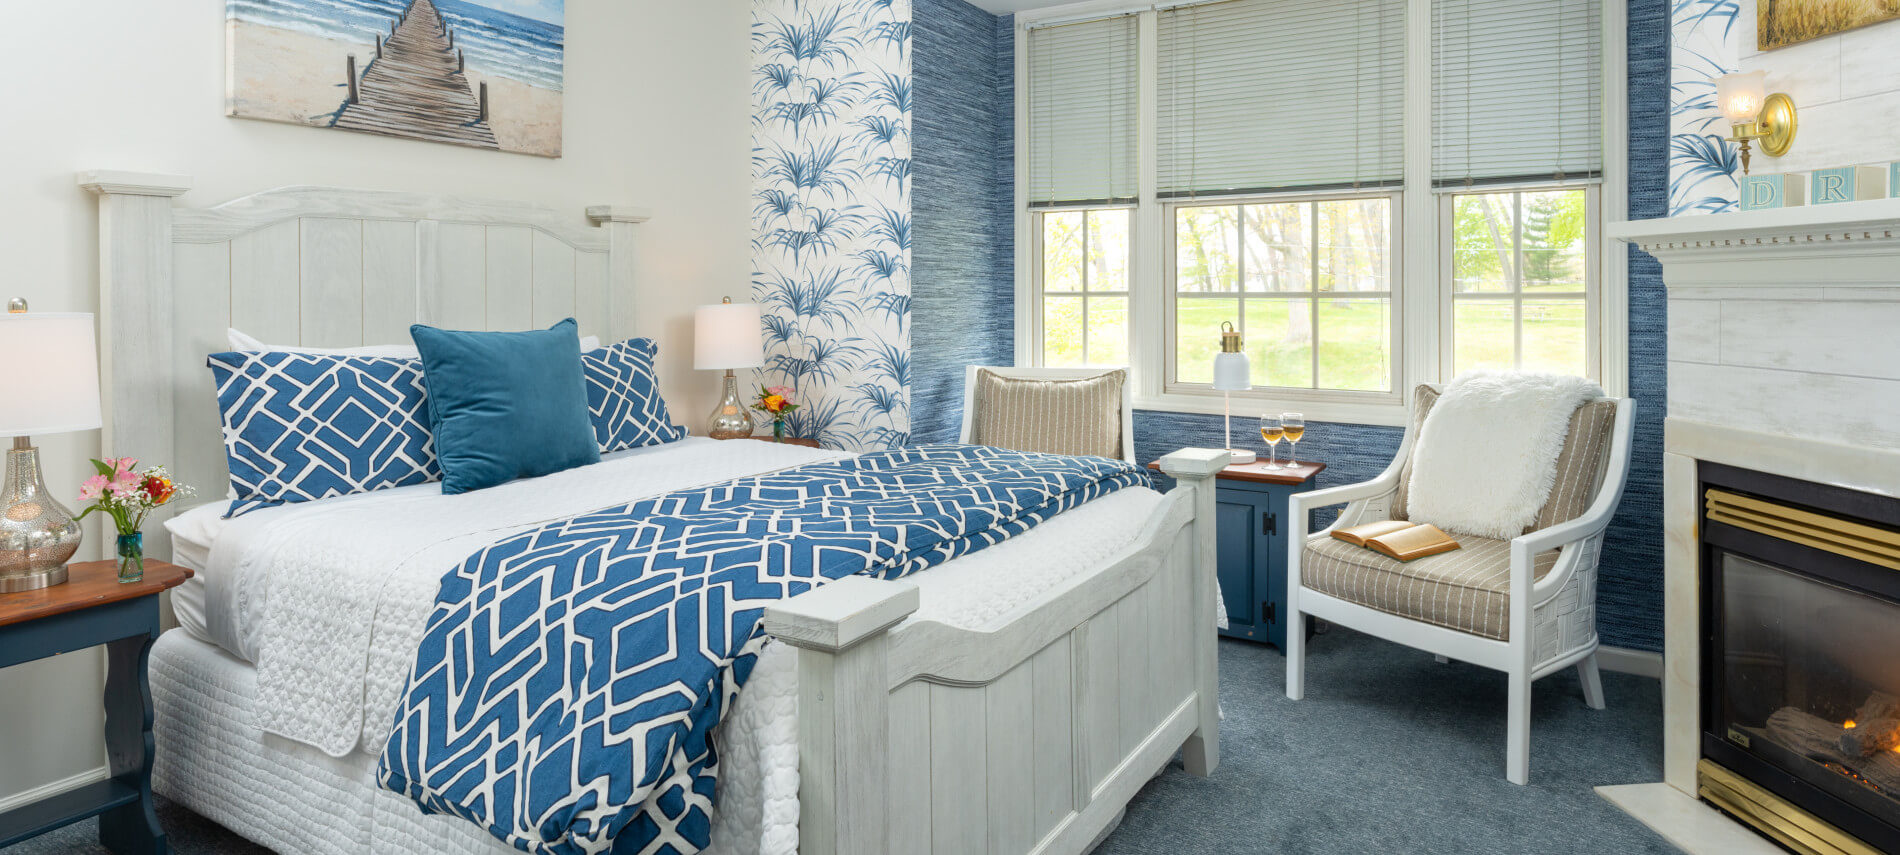 Queen bed with white wood frame and blue comforter, cushioned white wicker chairs by windows, blue carpet, fireplace with cream mantel.